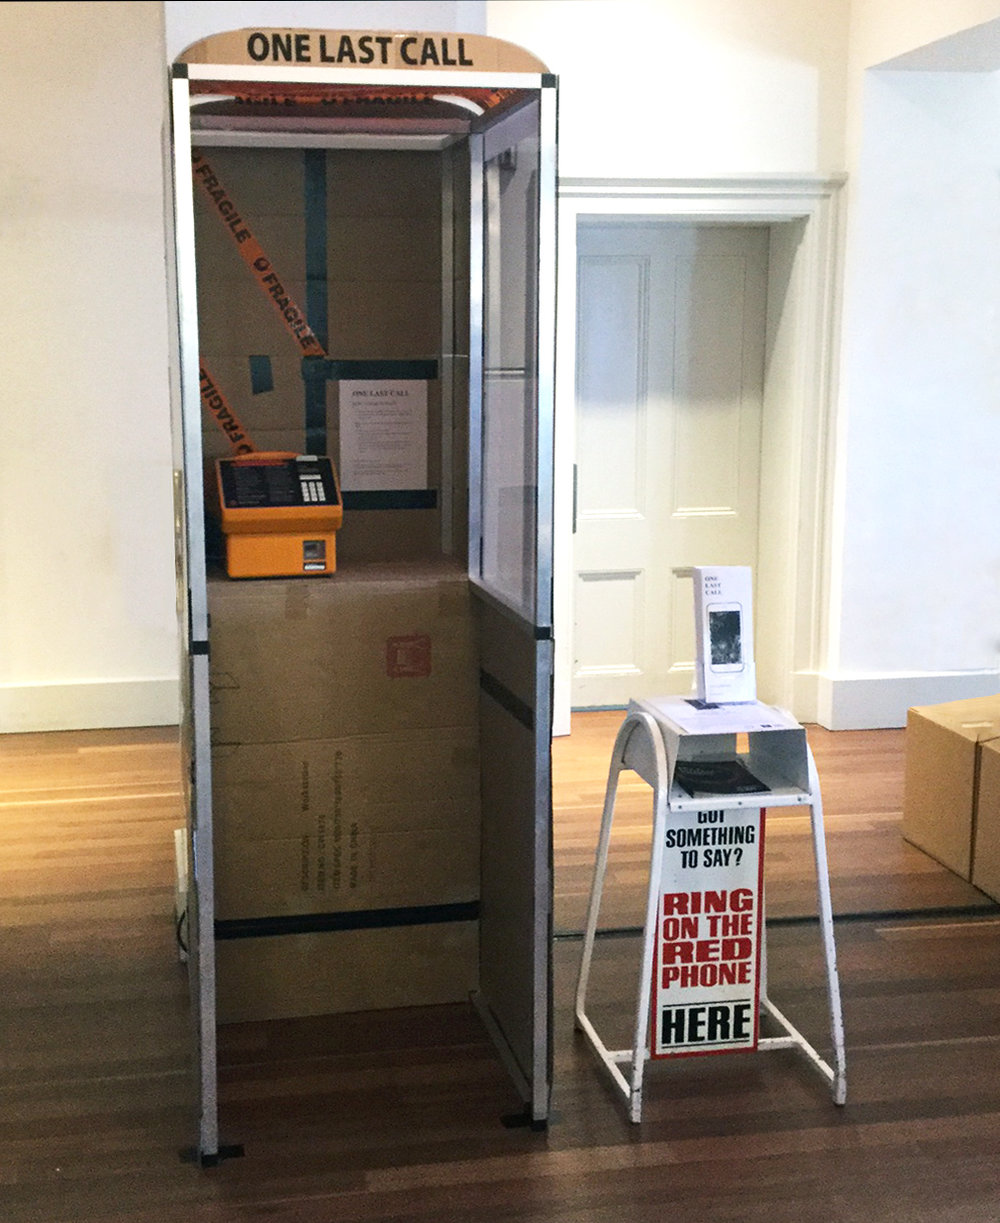 The One Last Call phone booth installed at the Kathleen Syme Library and Community Centre, Melbourne, 2017.